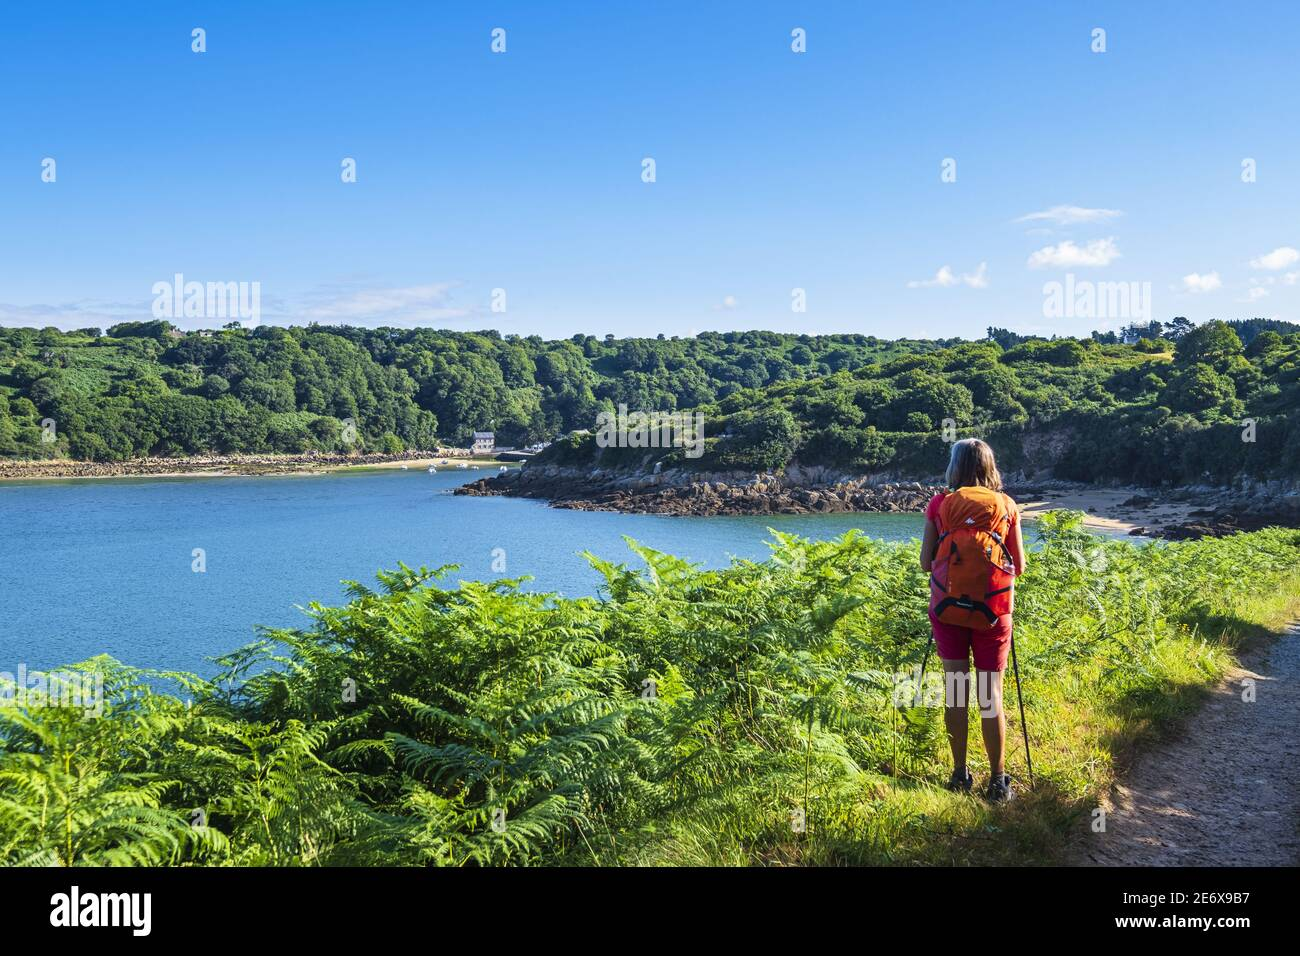 France, Cotes d'Armor, Tredrez-Locquemeau, hike along the GR 34 hiking trail or customs trail, the mouth of the Leguer river Stock Photo